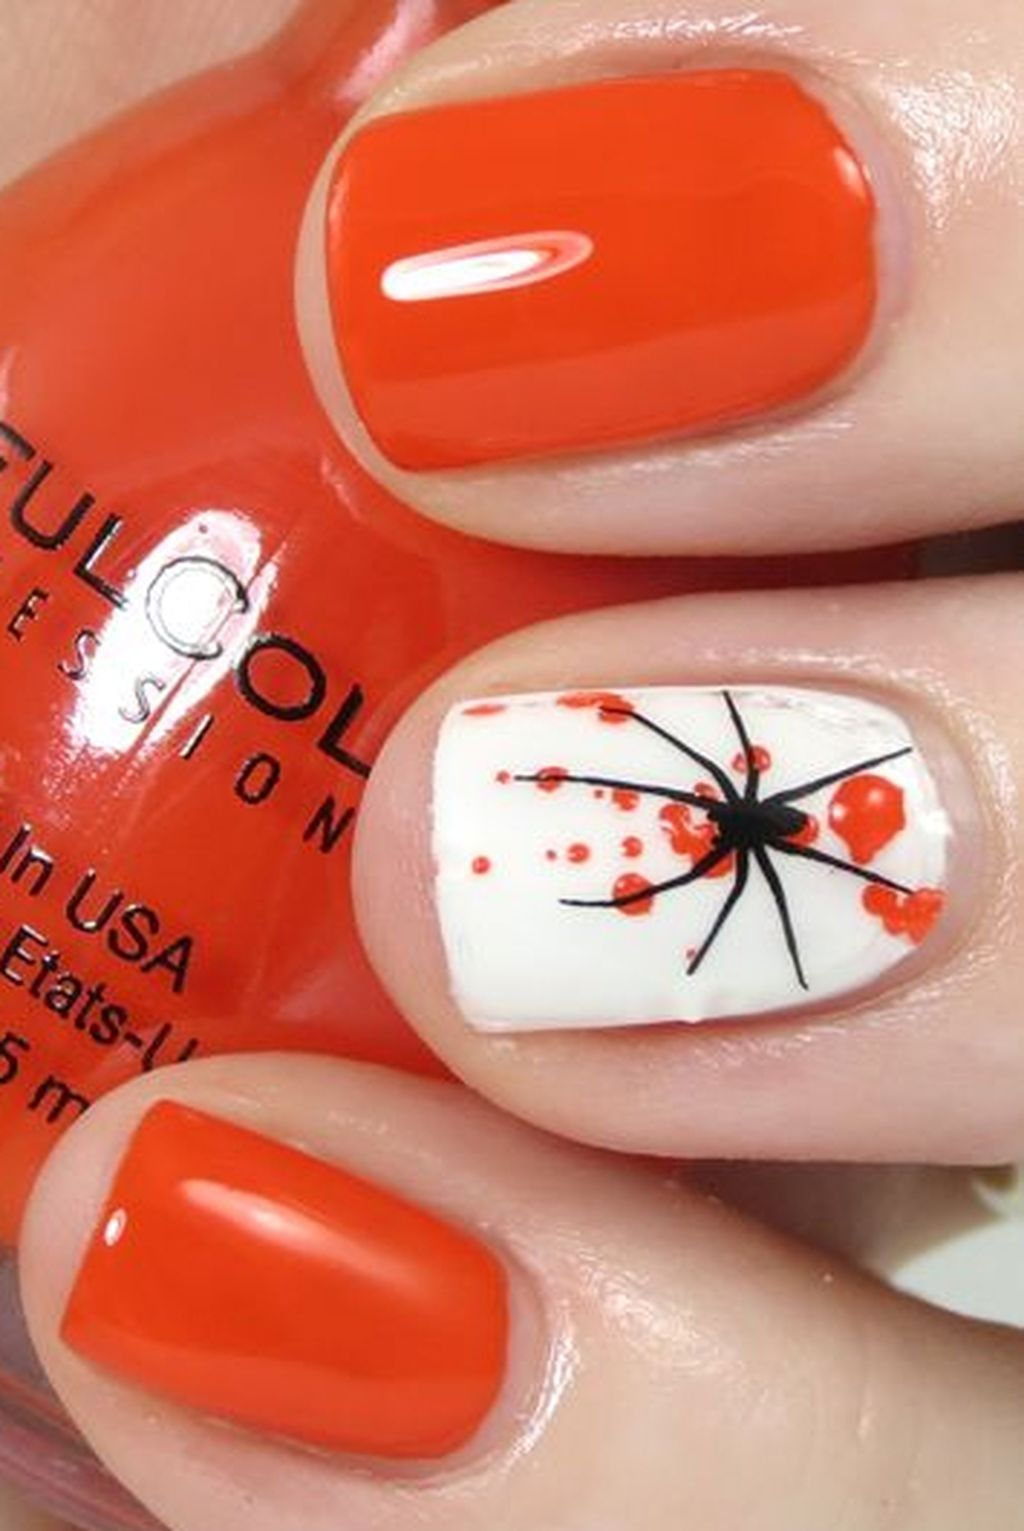 spooky nail designs for halloween to scare your friends in